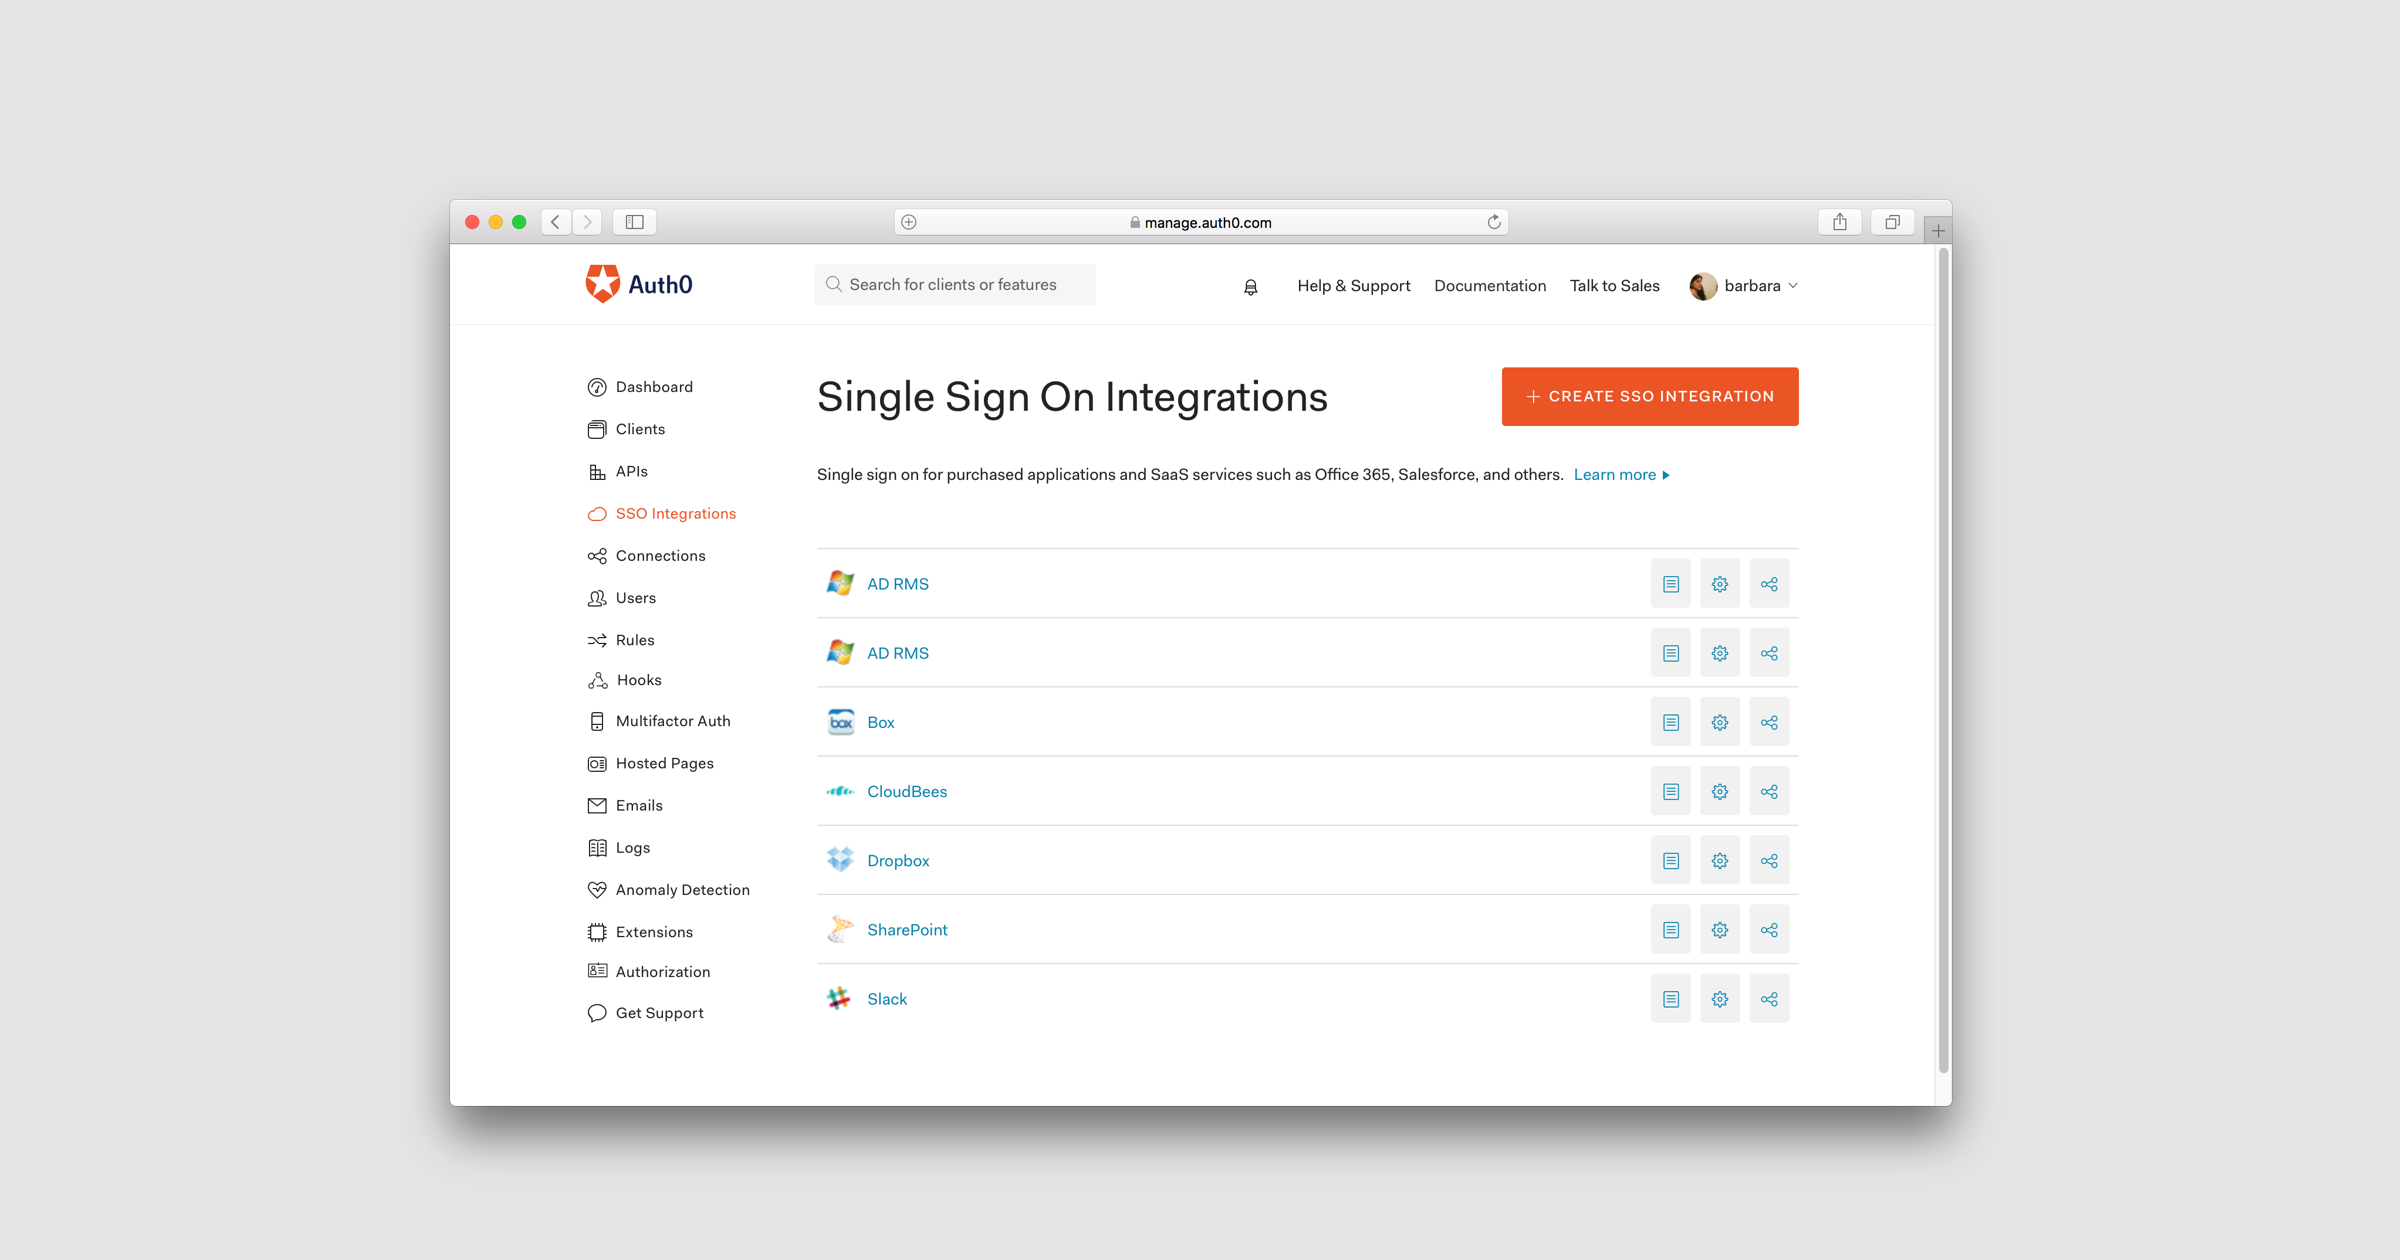 Single sign on integrations